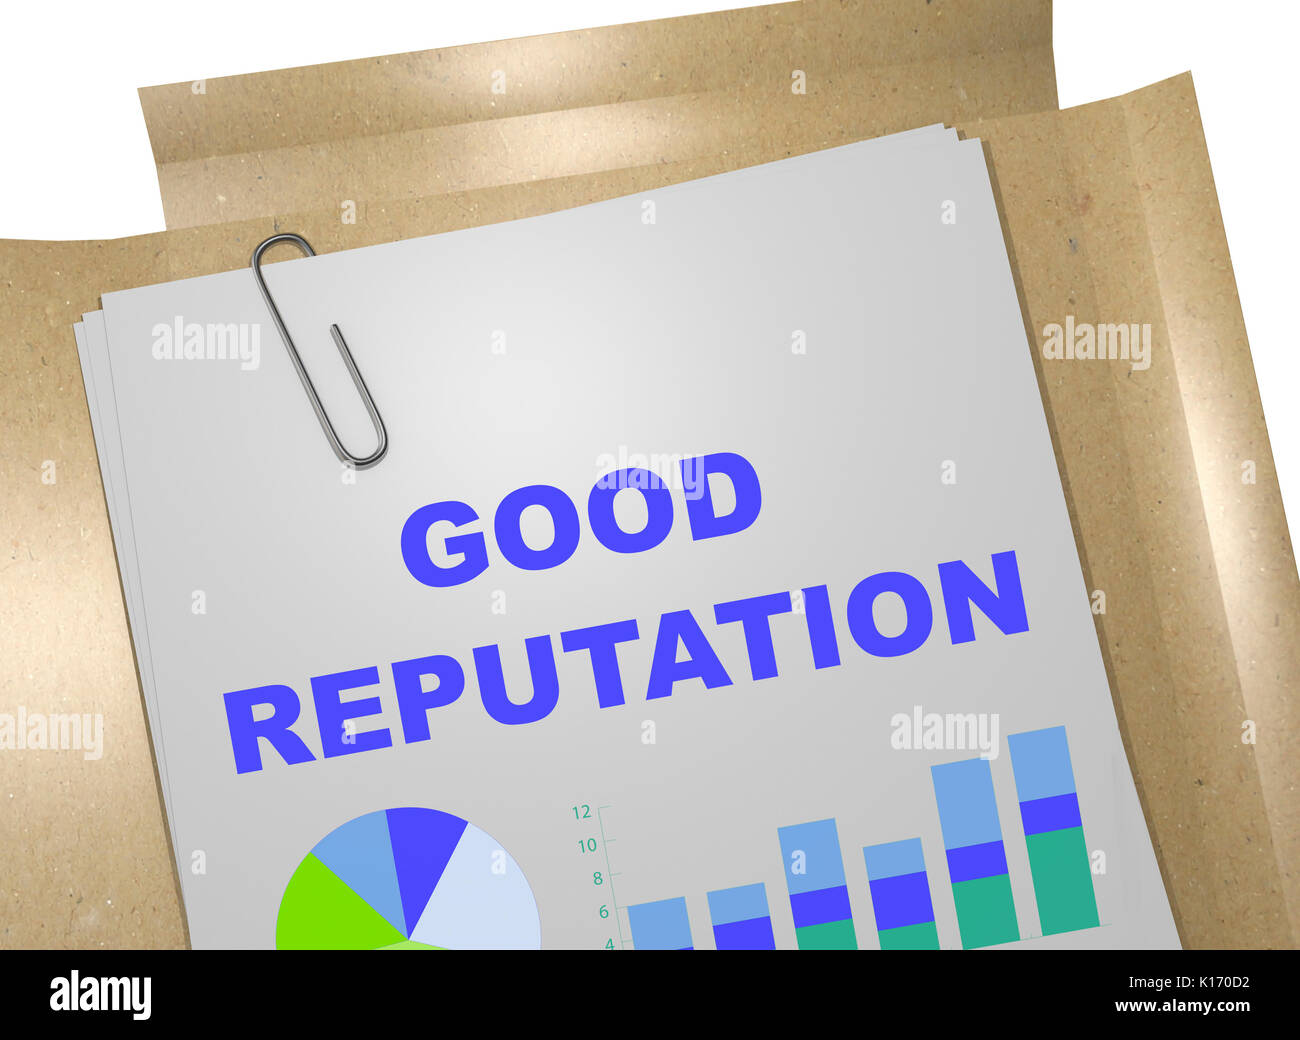 3D illustration of 'GOOD REPUTATION' title on business document - Stock Image